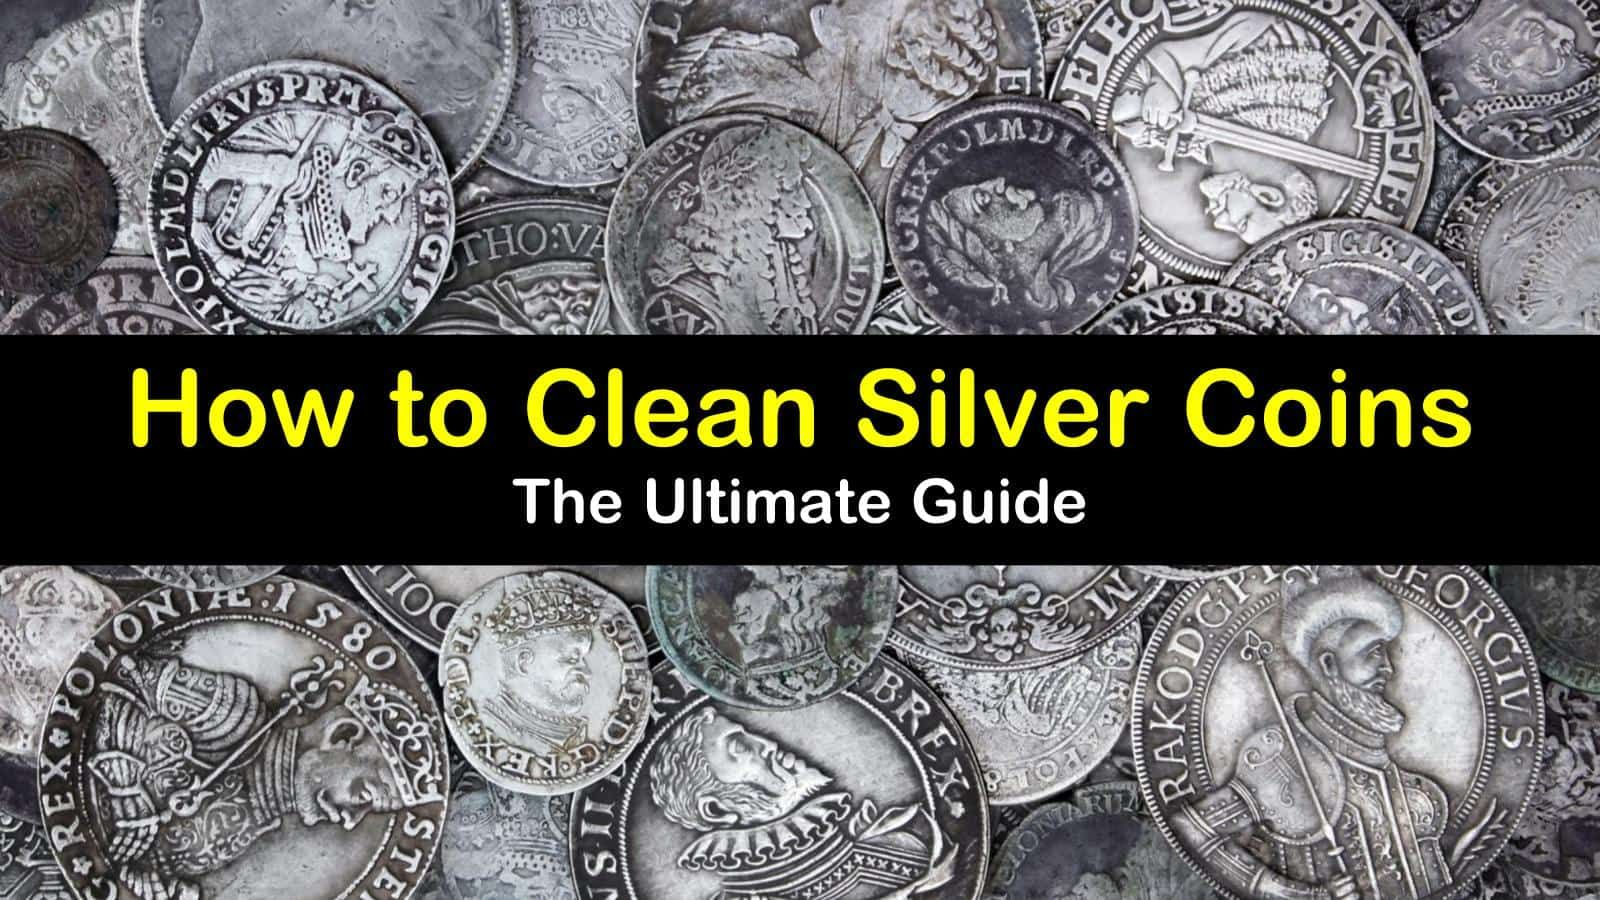 10 Simple But Effective Ways to Clean Silver Coins in 2020